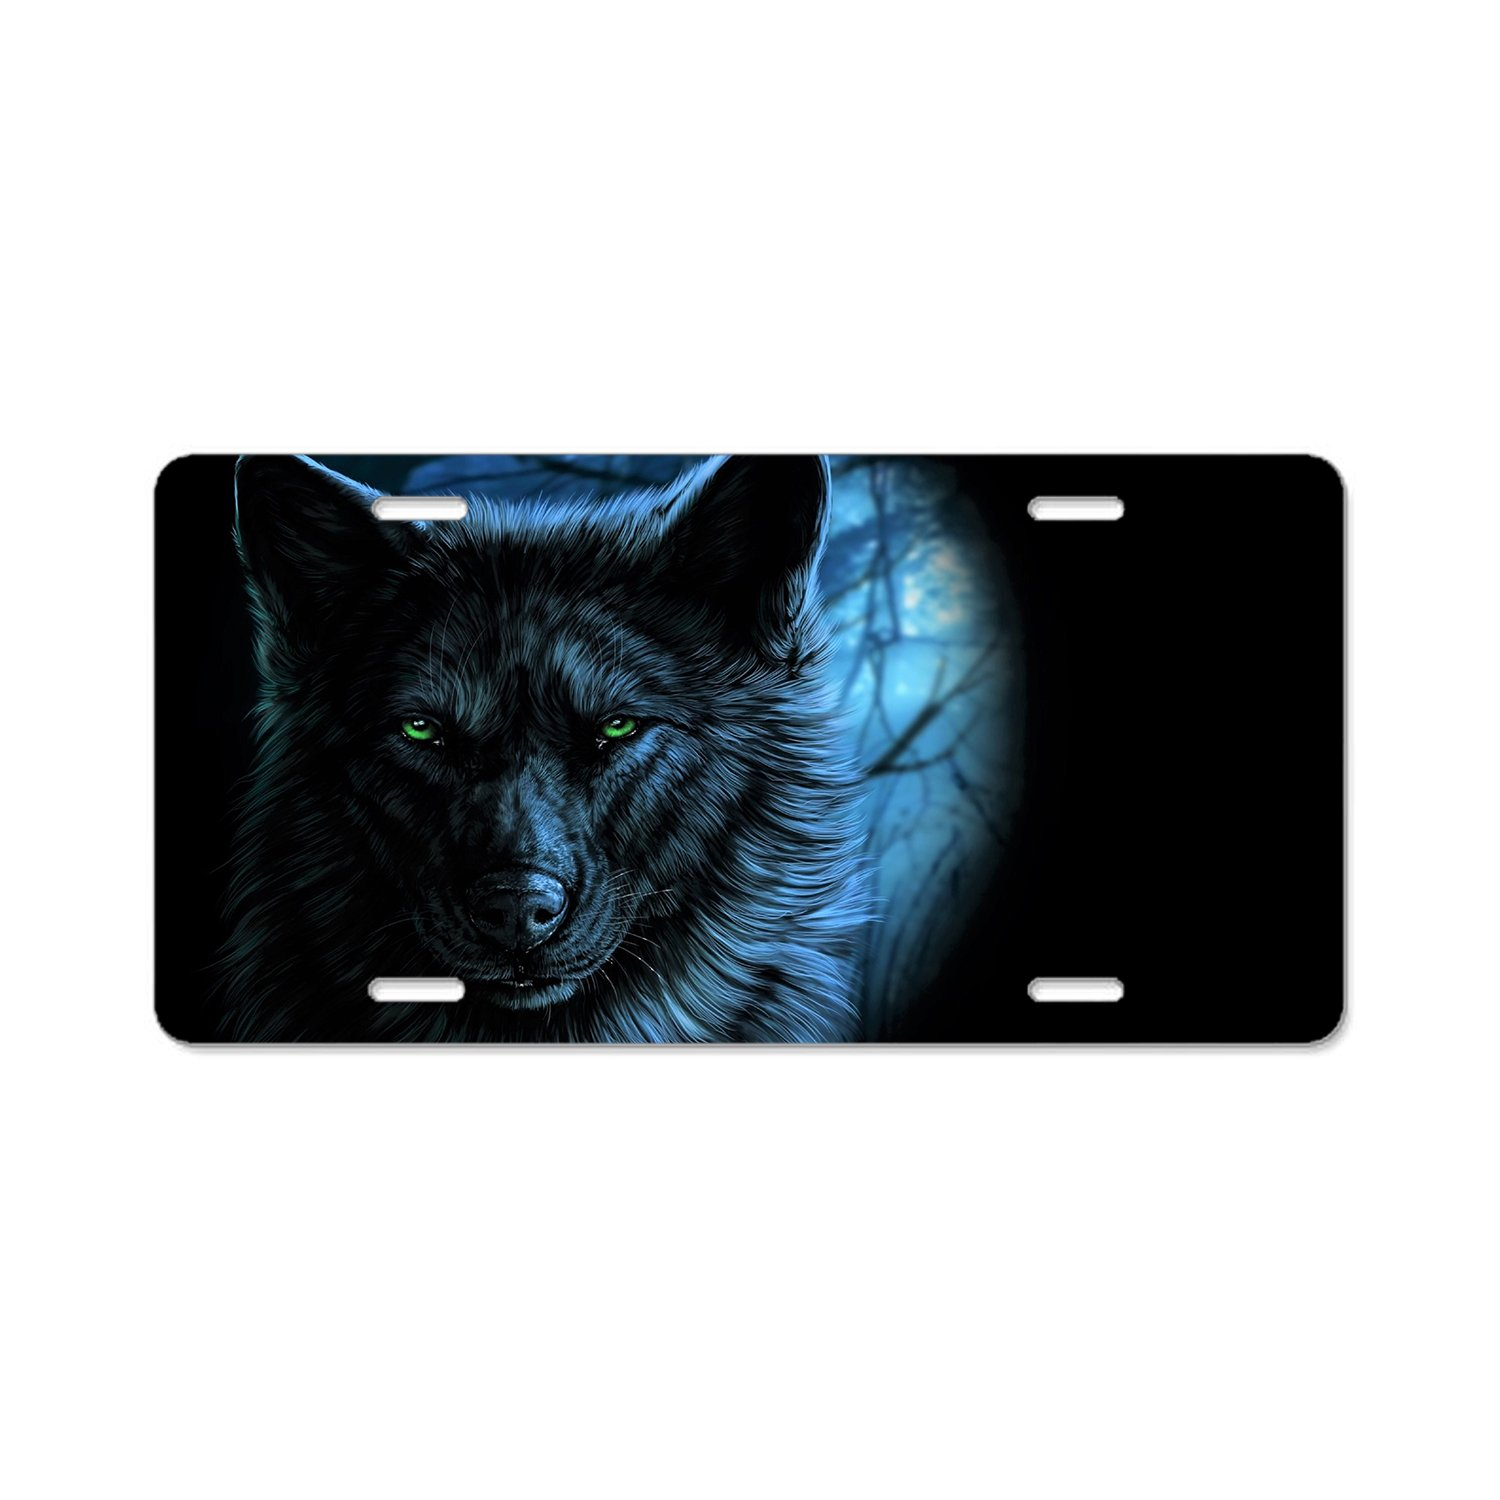 Rchengqush Personalized Novelty Front License Plate Covers Custom Vanity Decorative Aluminum Car Tag Wolf Green Eyes